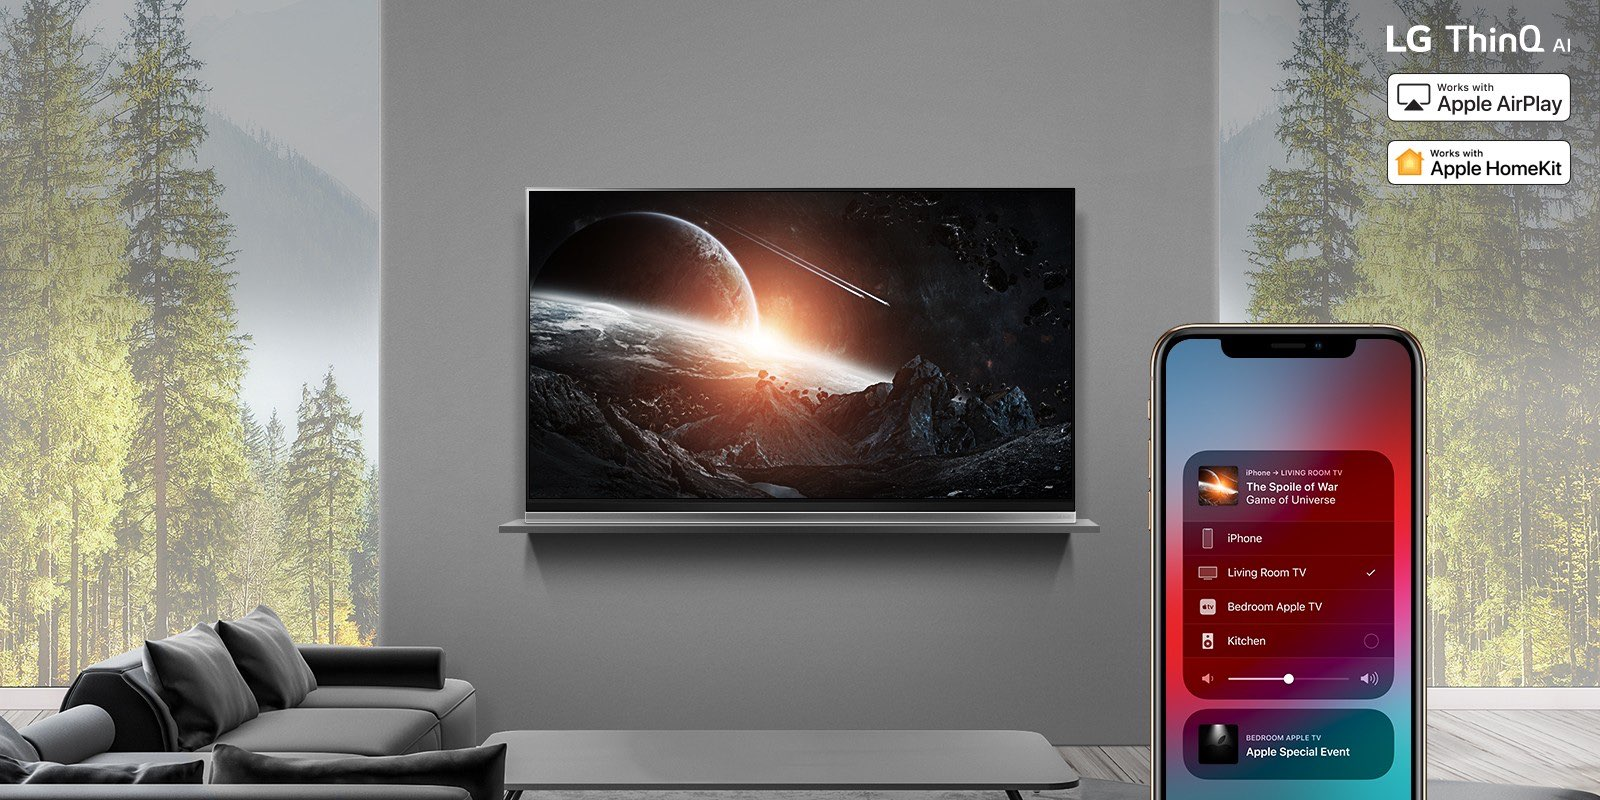 LG says AirPlay 2 and HomeKit support for its Smart TVs is starting